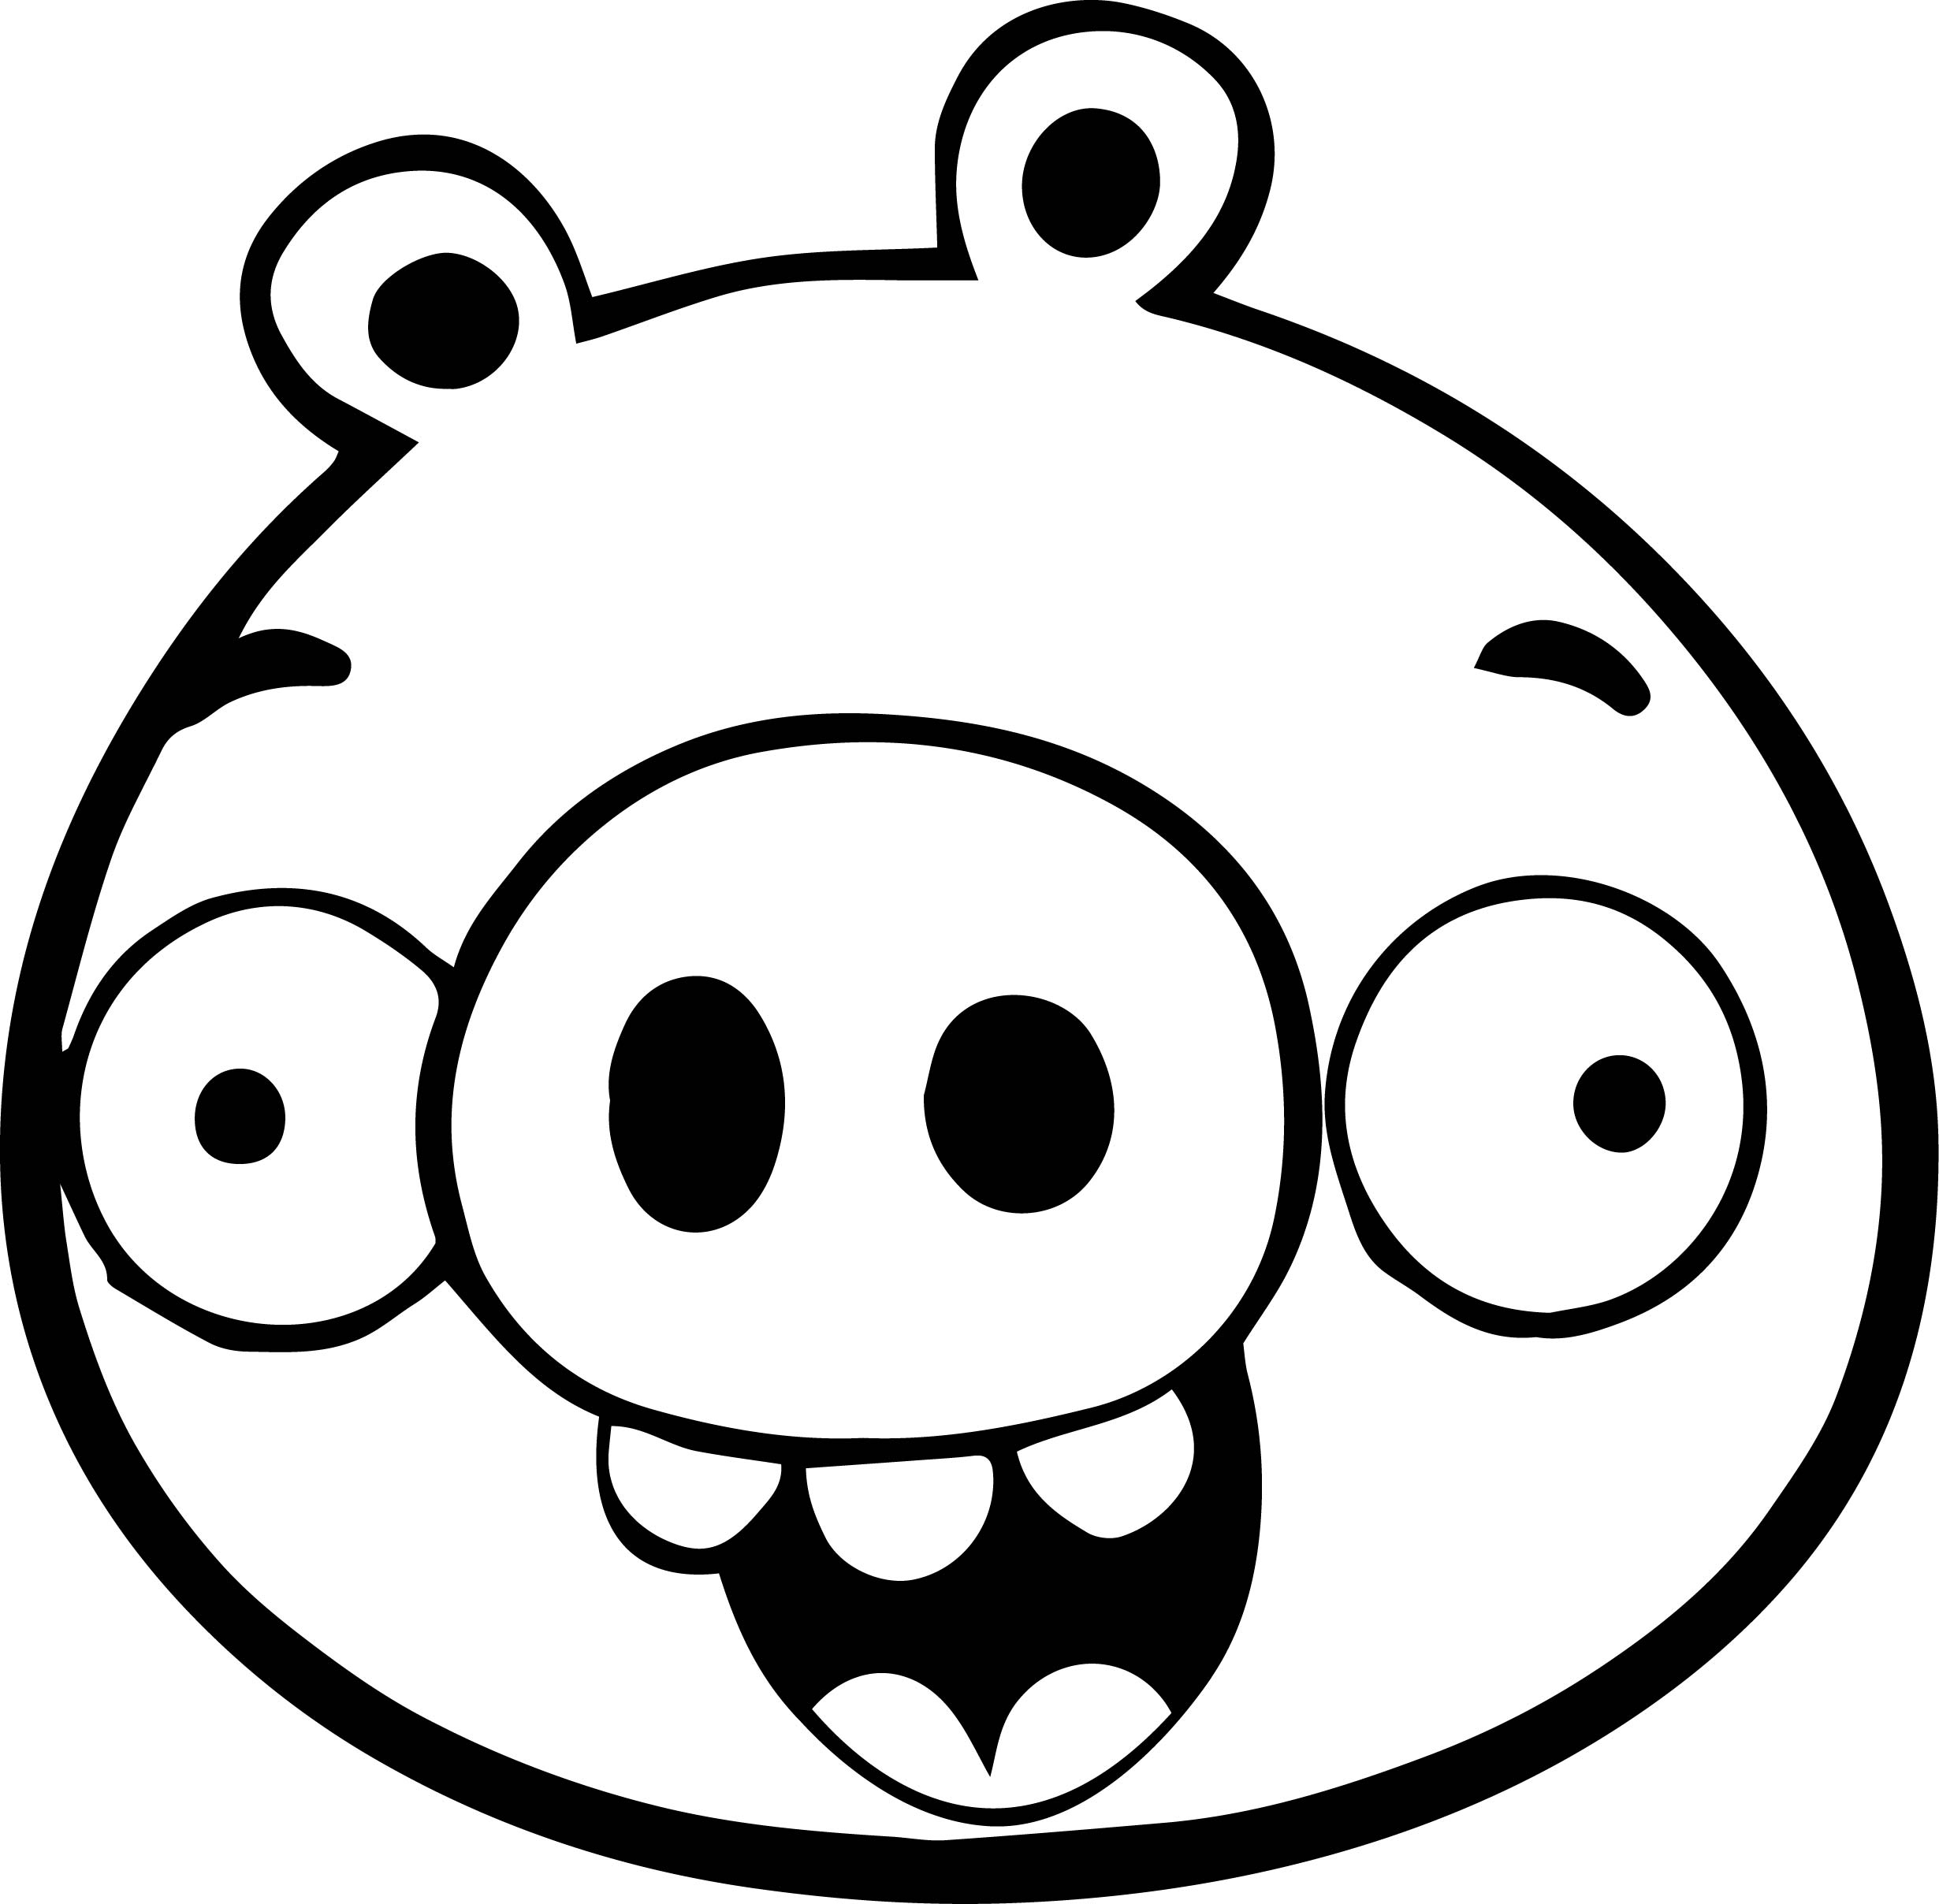 Bad Piggies Pig Coloring Page